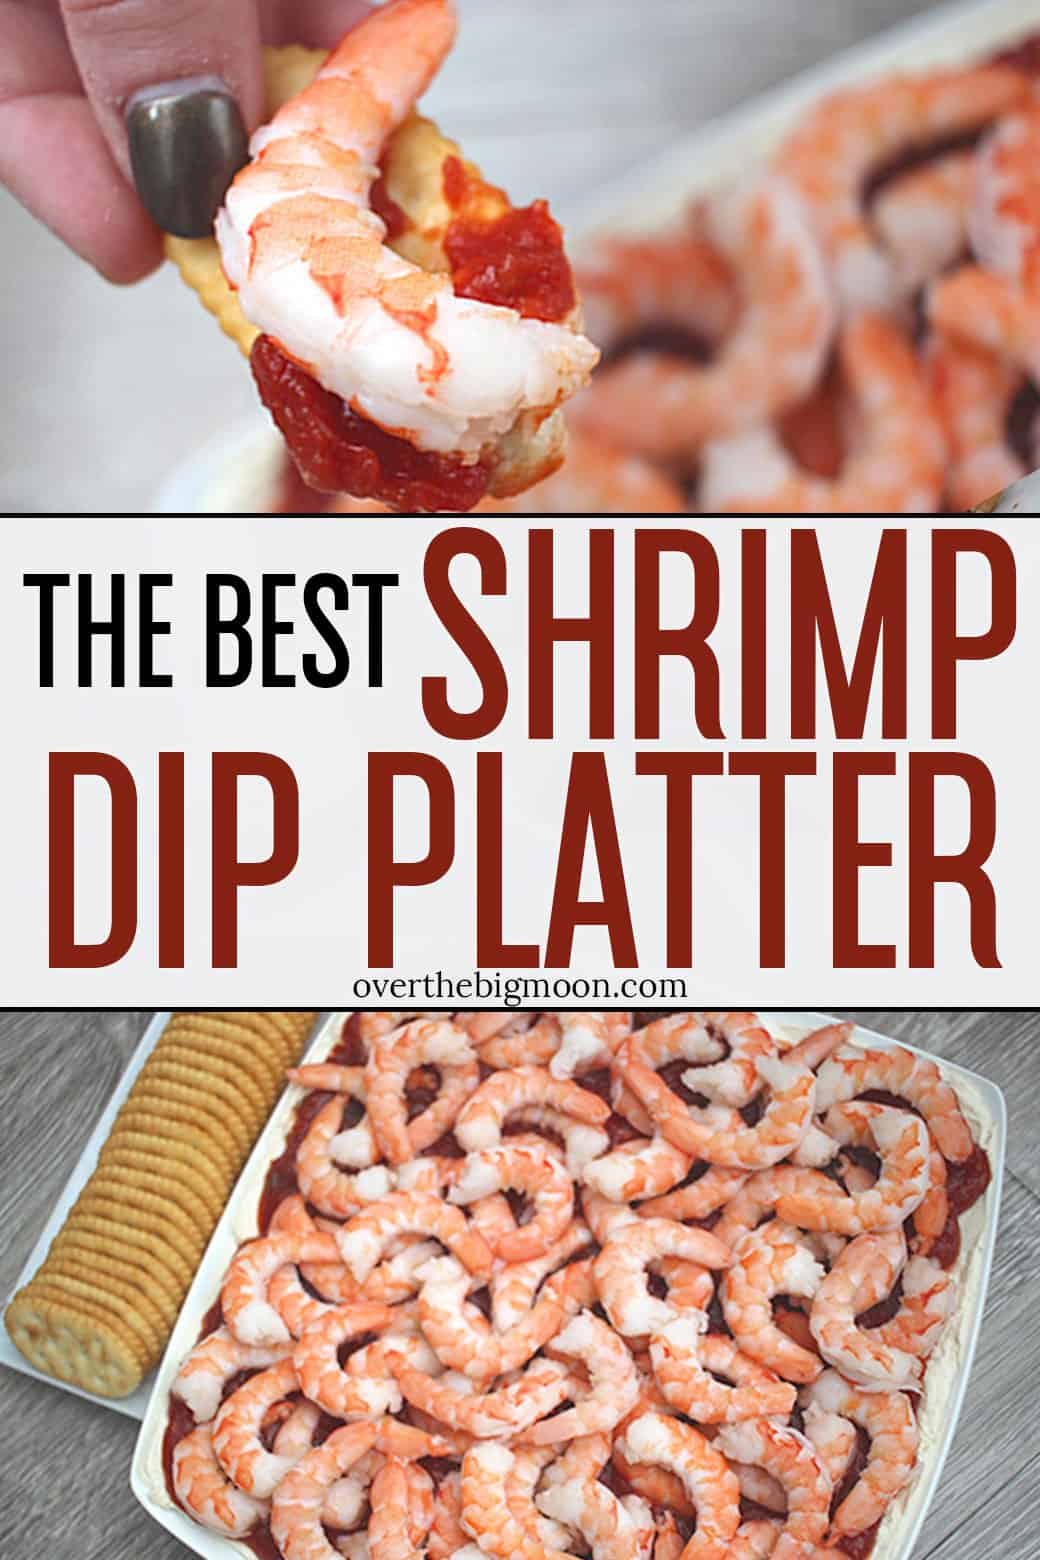 The best Shrimp Dip Platter - the flavor combinations are perfection! This appetizer is perfect for all occasions! From overthebigmoon.com!